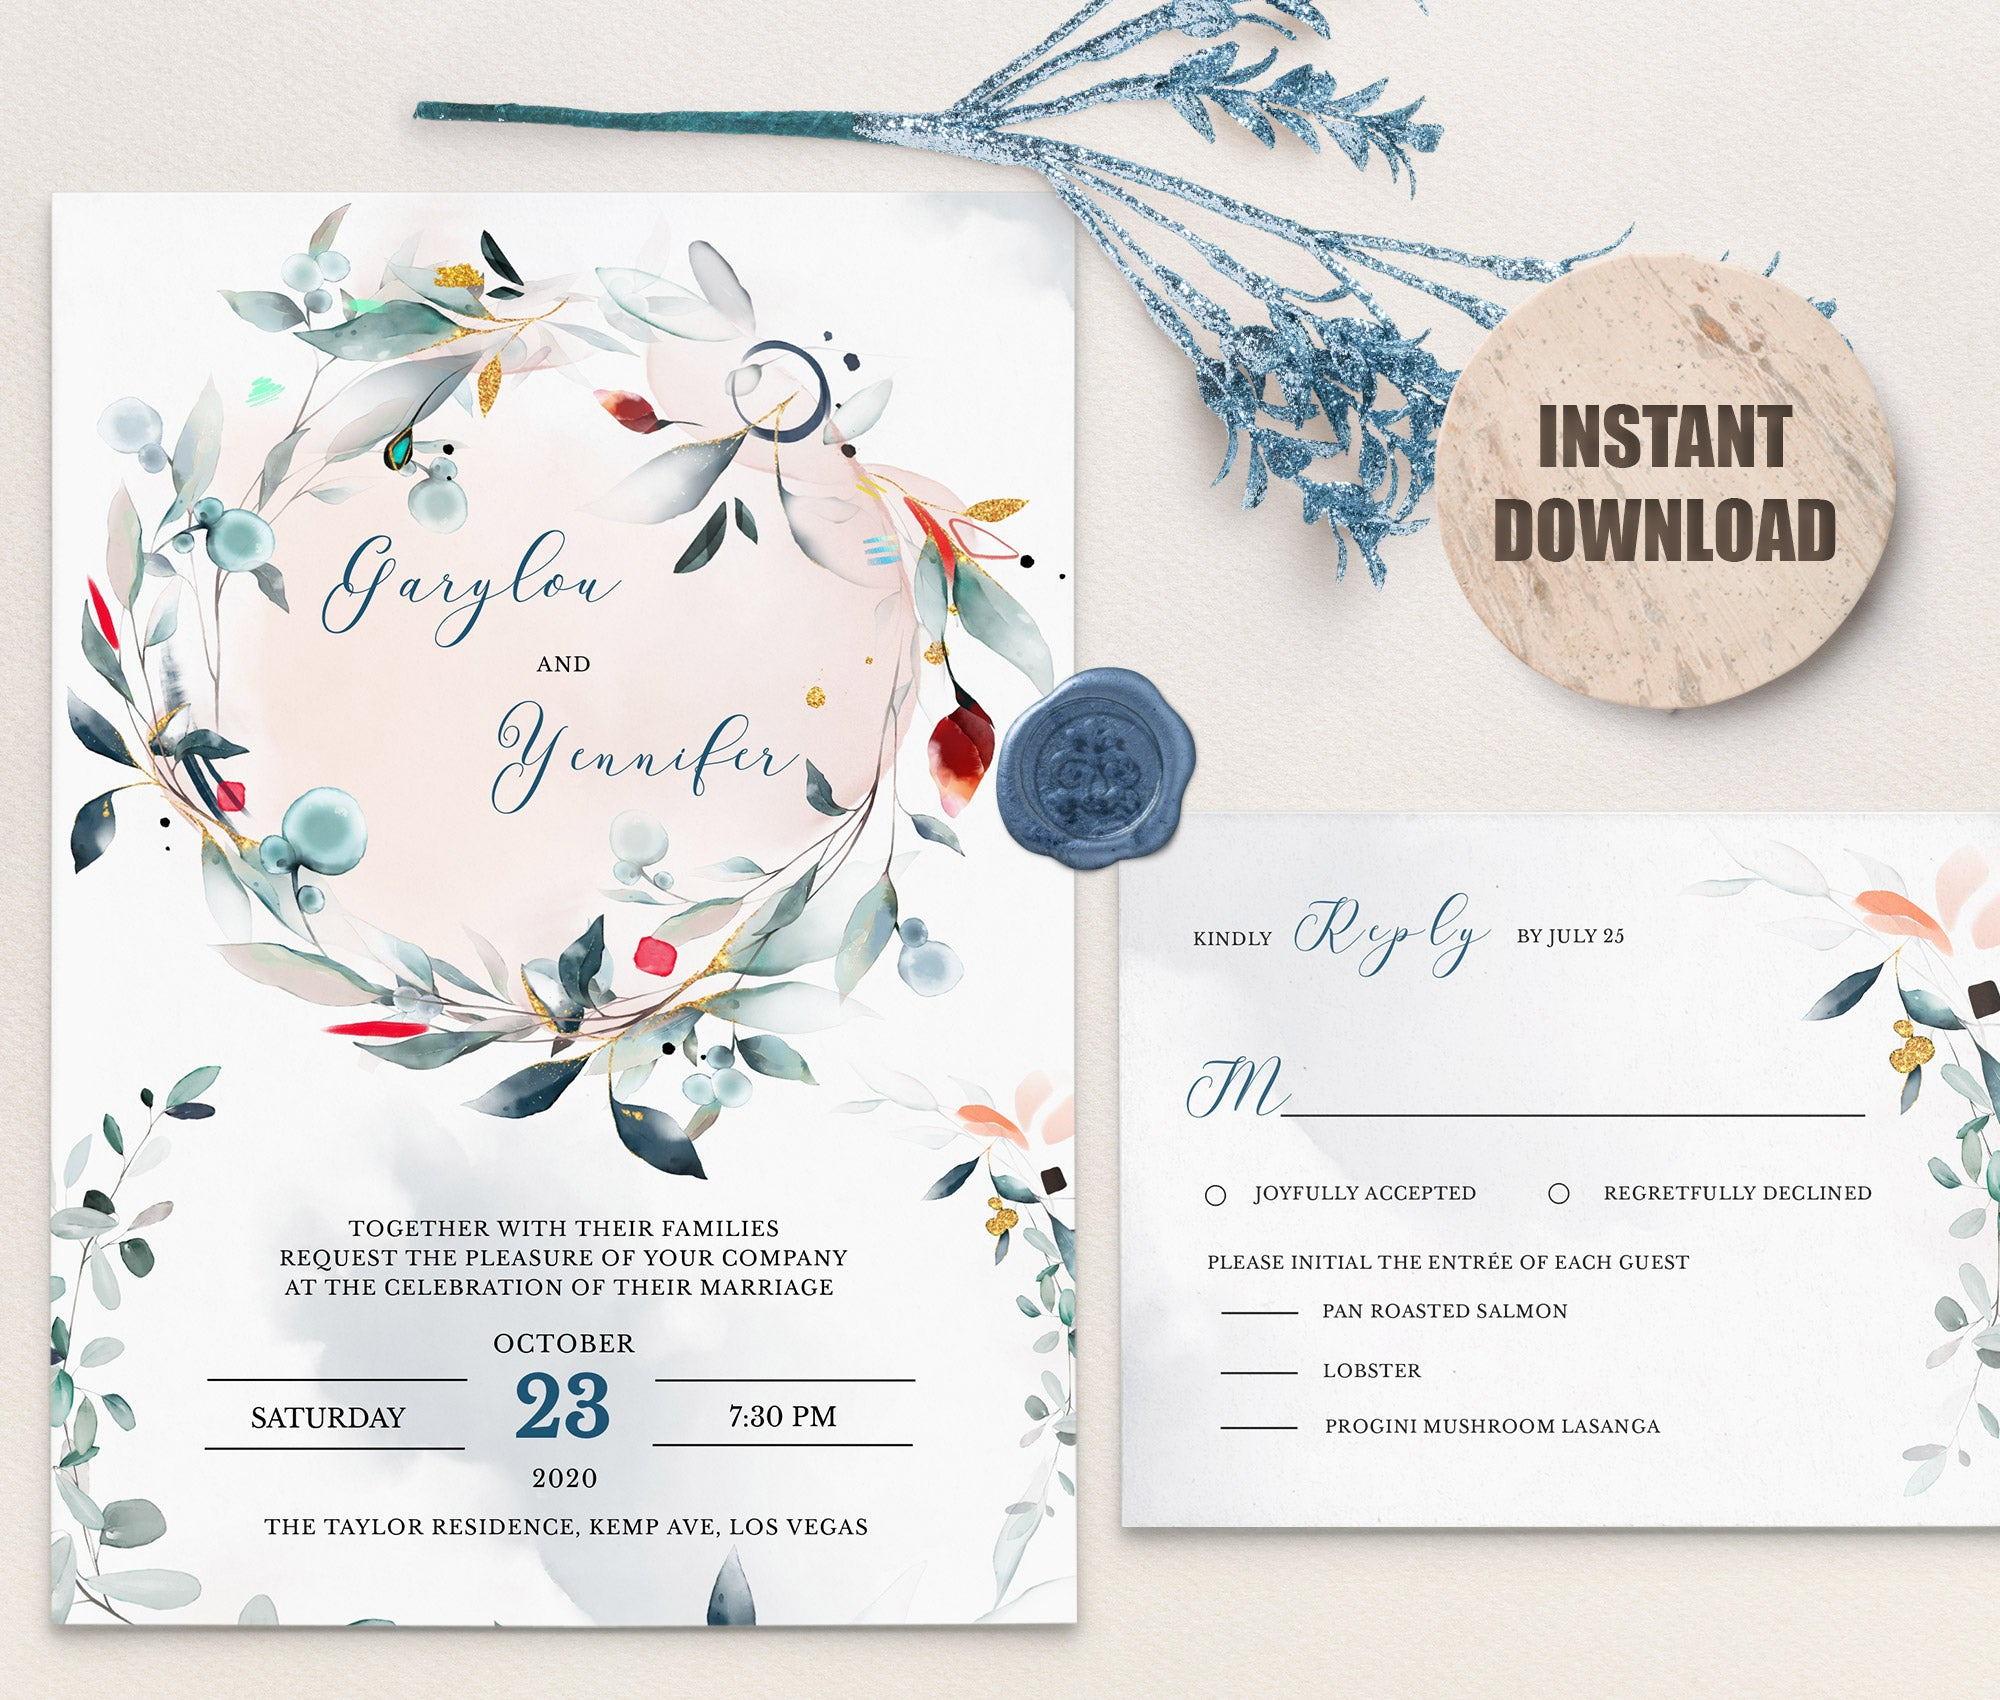 SPMR - Wedding Invitation and RSVP set 2 - Greenlanderdesign